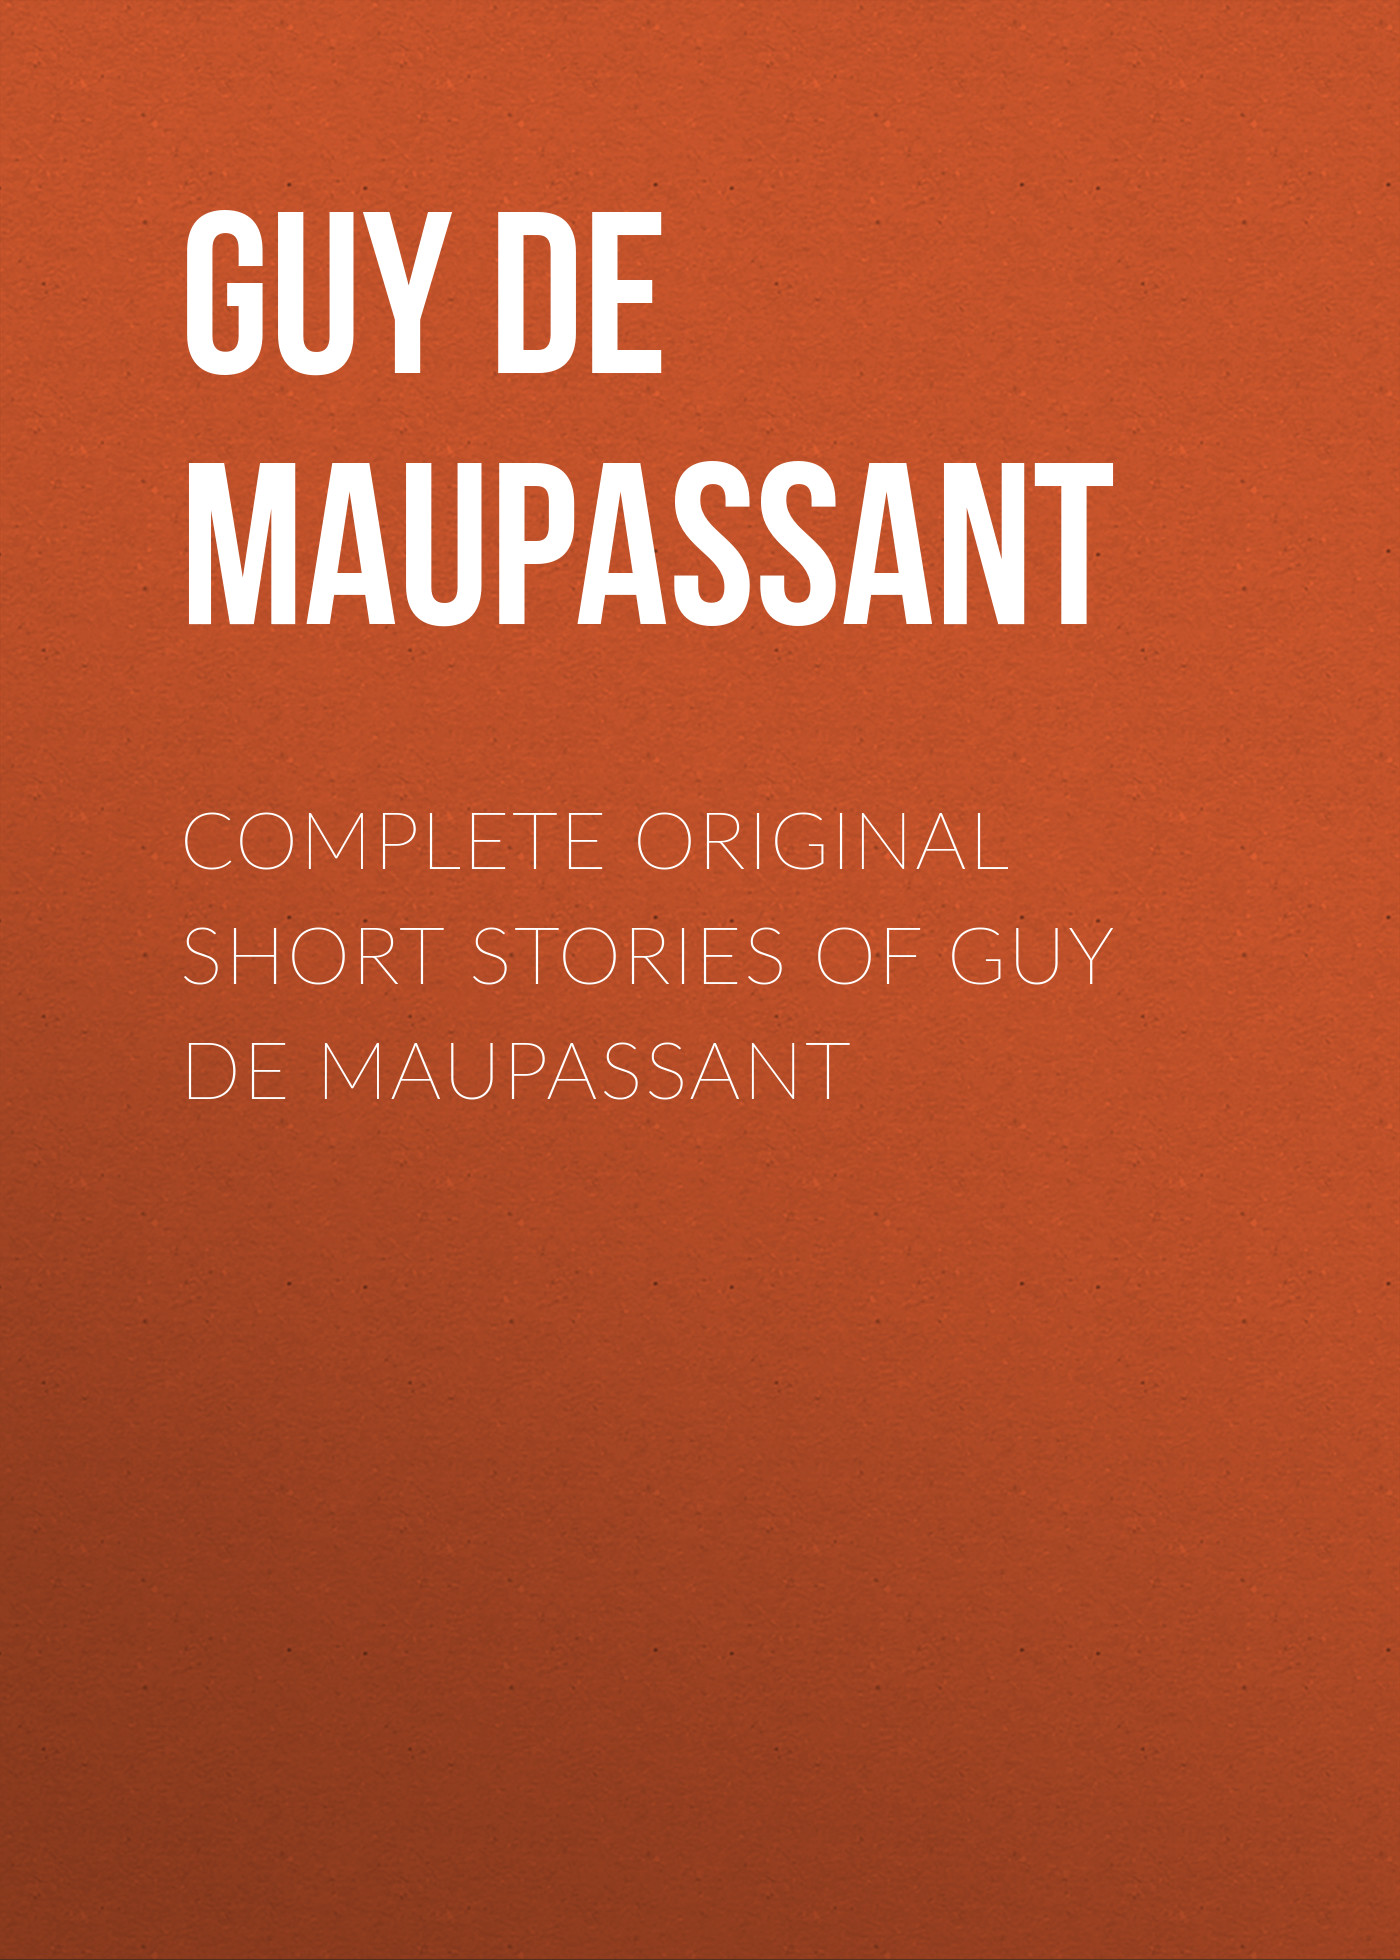 цены Ги де Мопассан Complete Original Short Stories of Guy De Maupassant